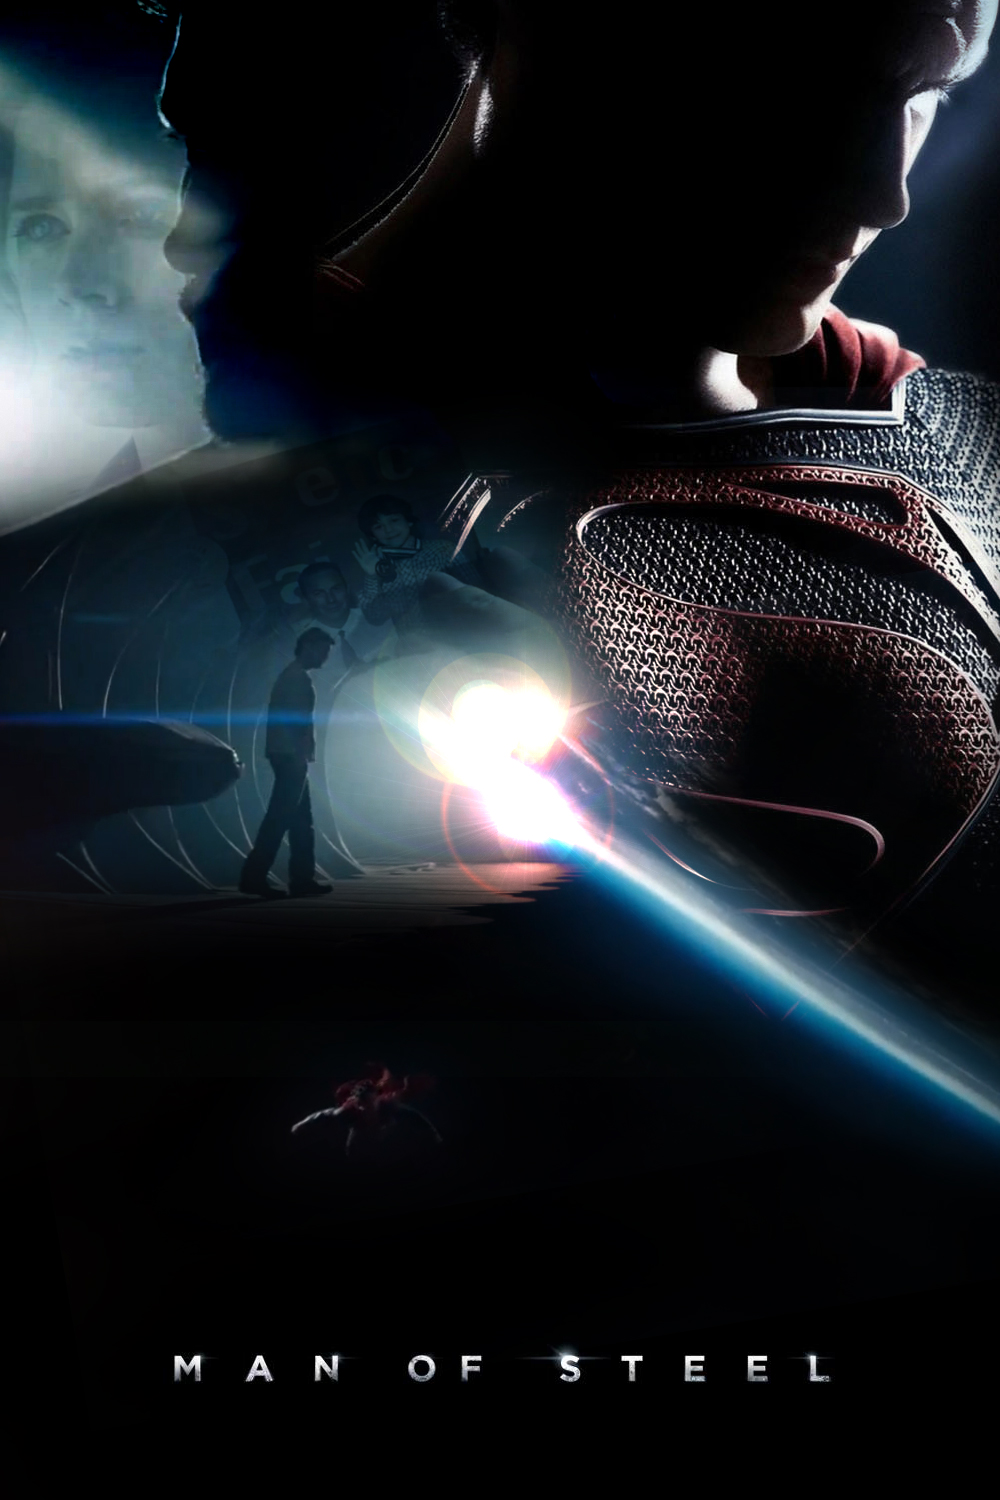 Man of Steel Poster [Poster Fanmade] by KanomBRAVO